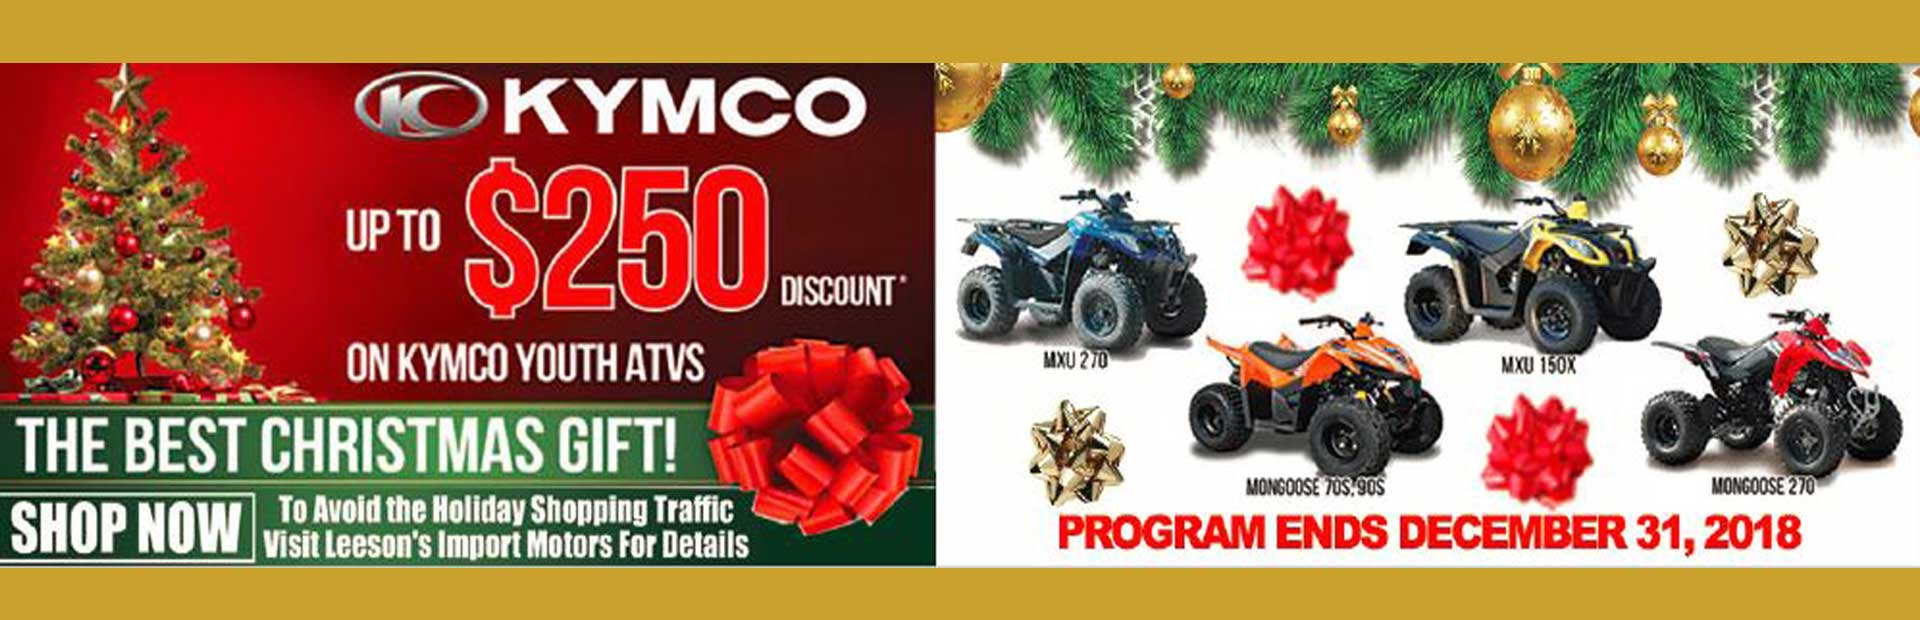 Kymco Youth Models Holiday Sale